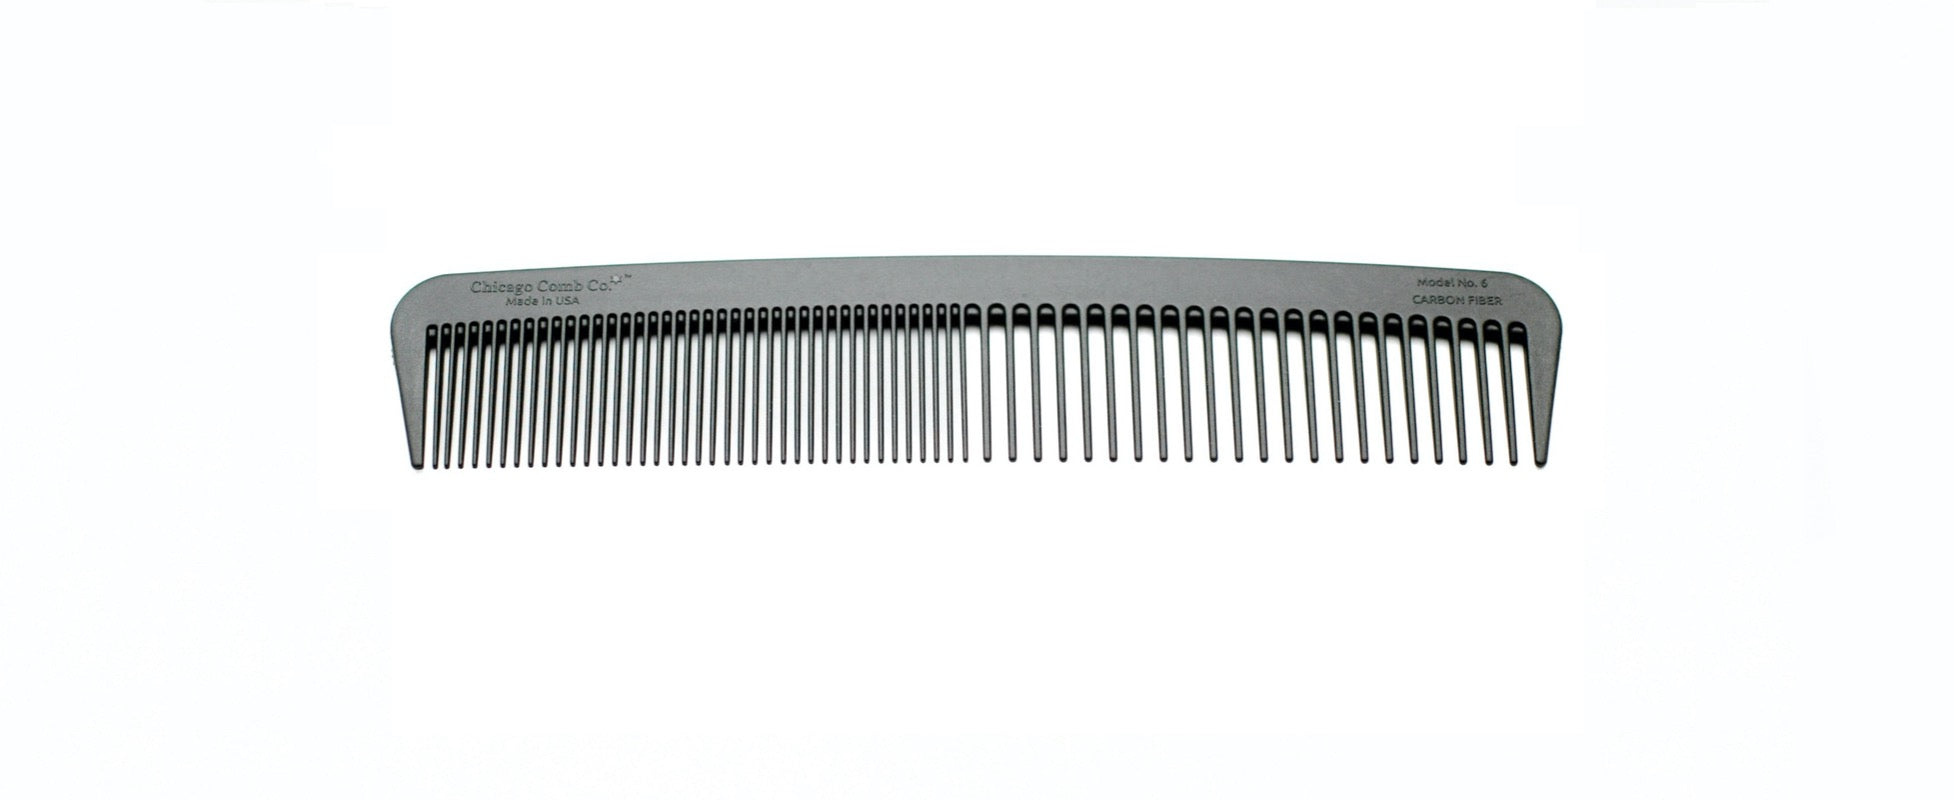 Model No. 6 - Carbon Fiber comb